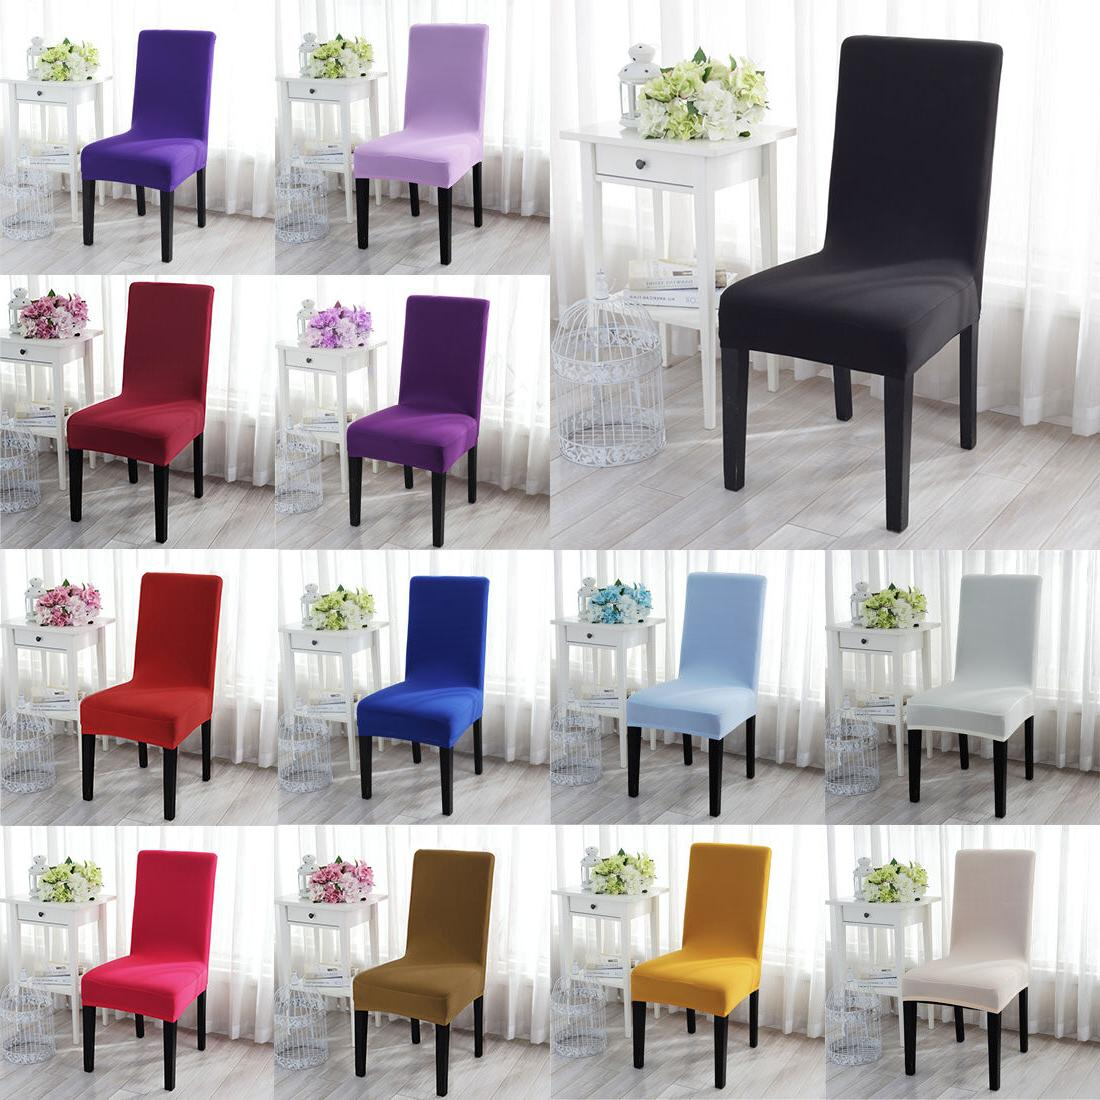 2 4 6 8pcs dining chair covers